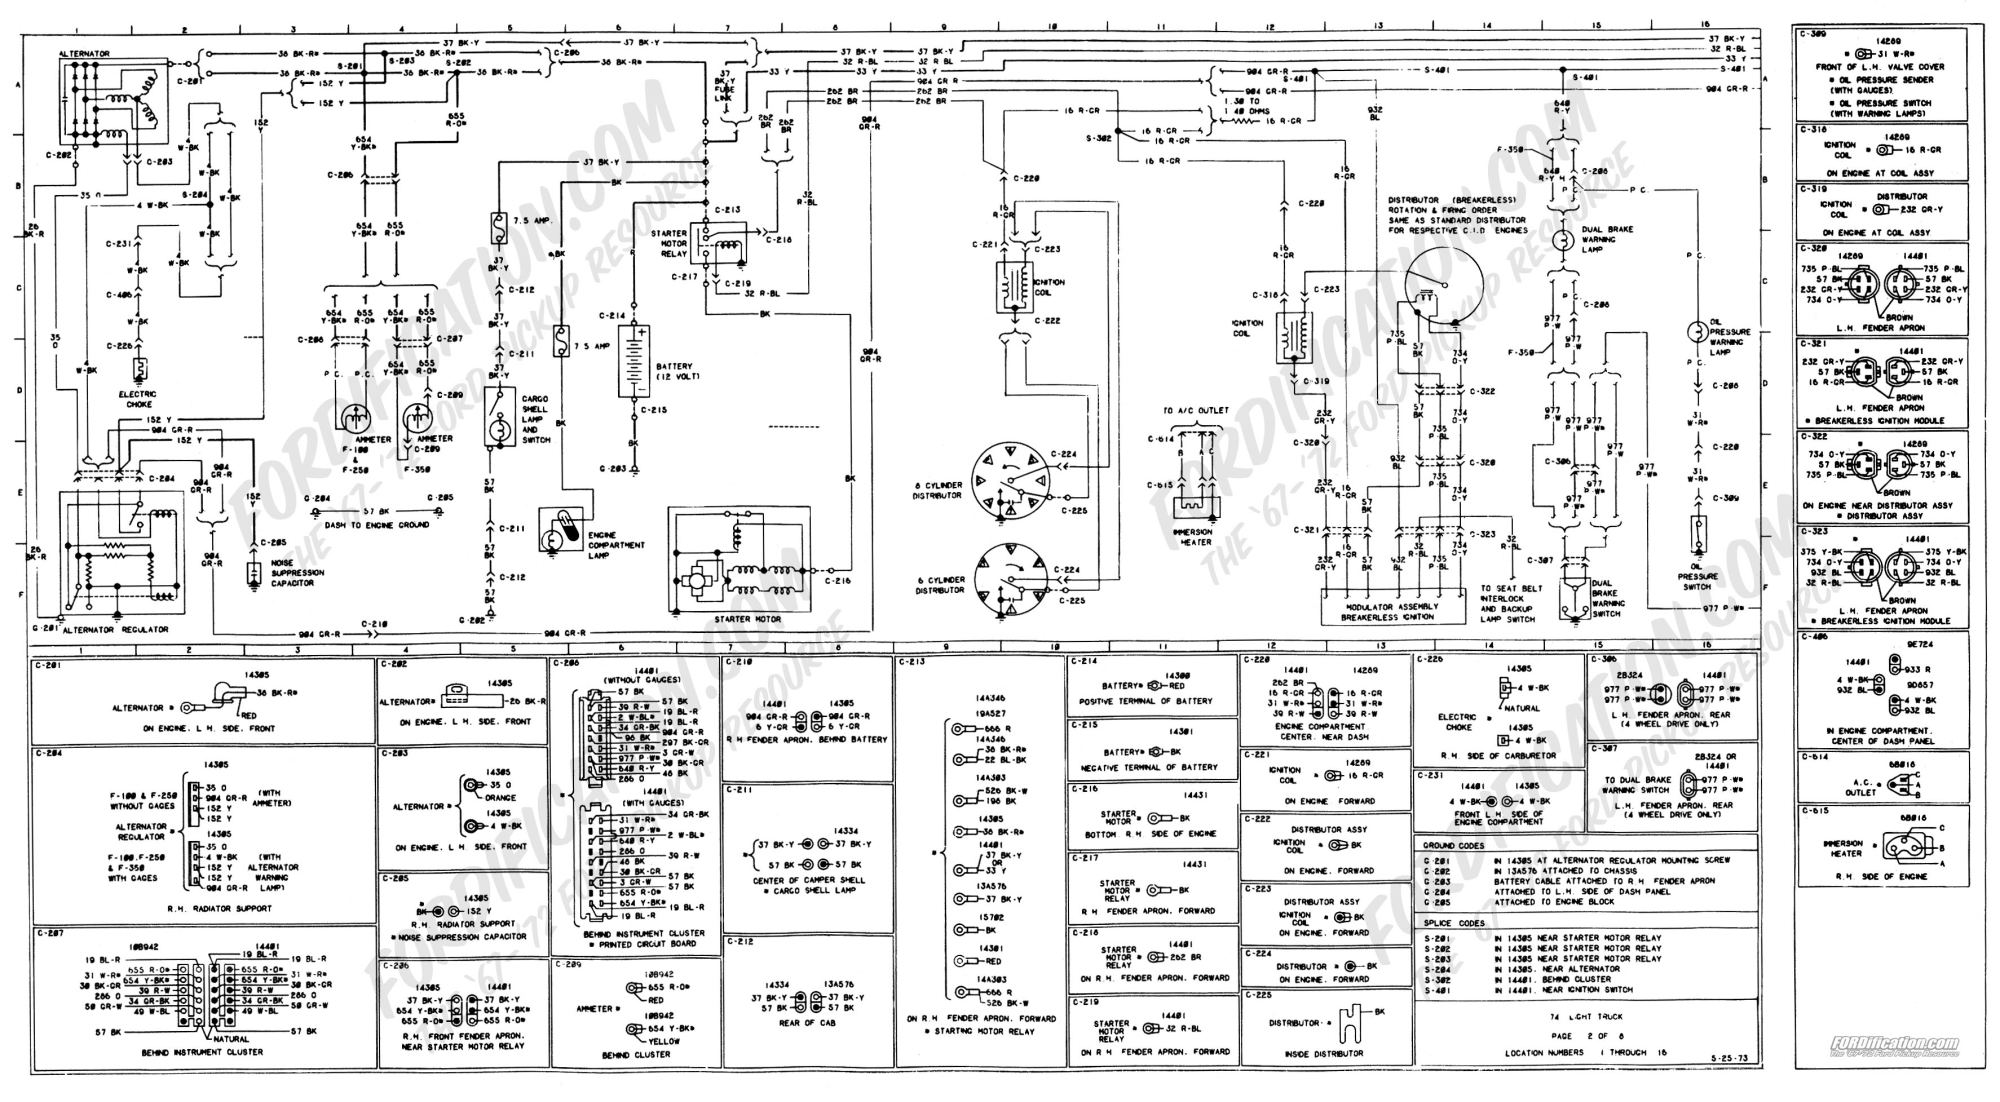 hight resolution of 1977 ford pinto wiring diagram wiring diagram todays ford ignition module wiring diagram 1971 ford pinto wiring diagram